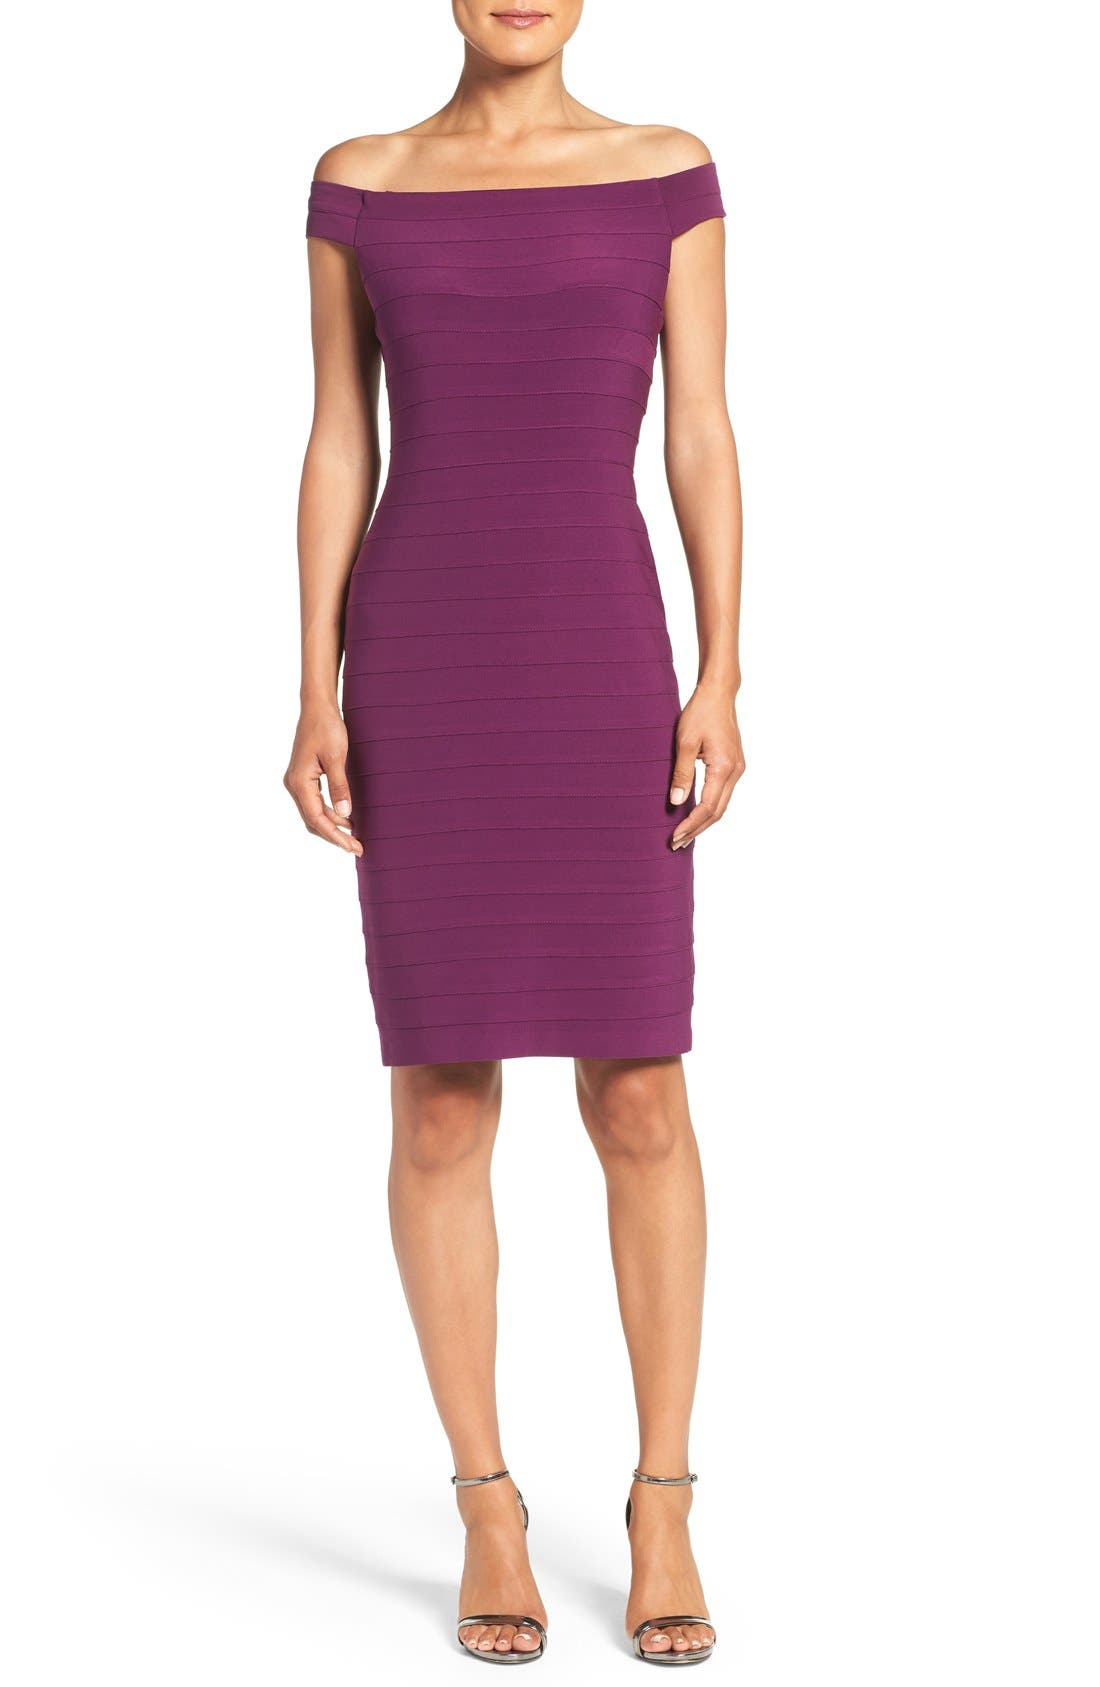 Adrianna Papell Off the Shoulder Bandage Dress